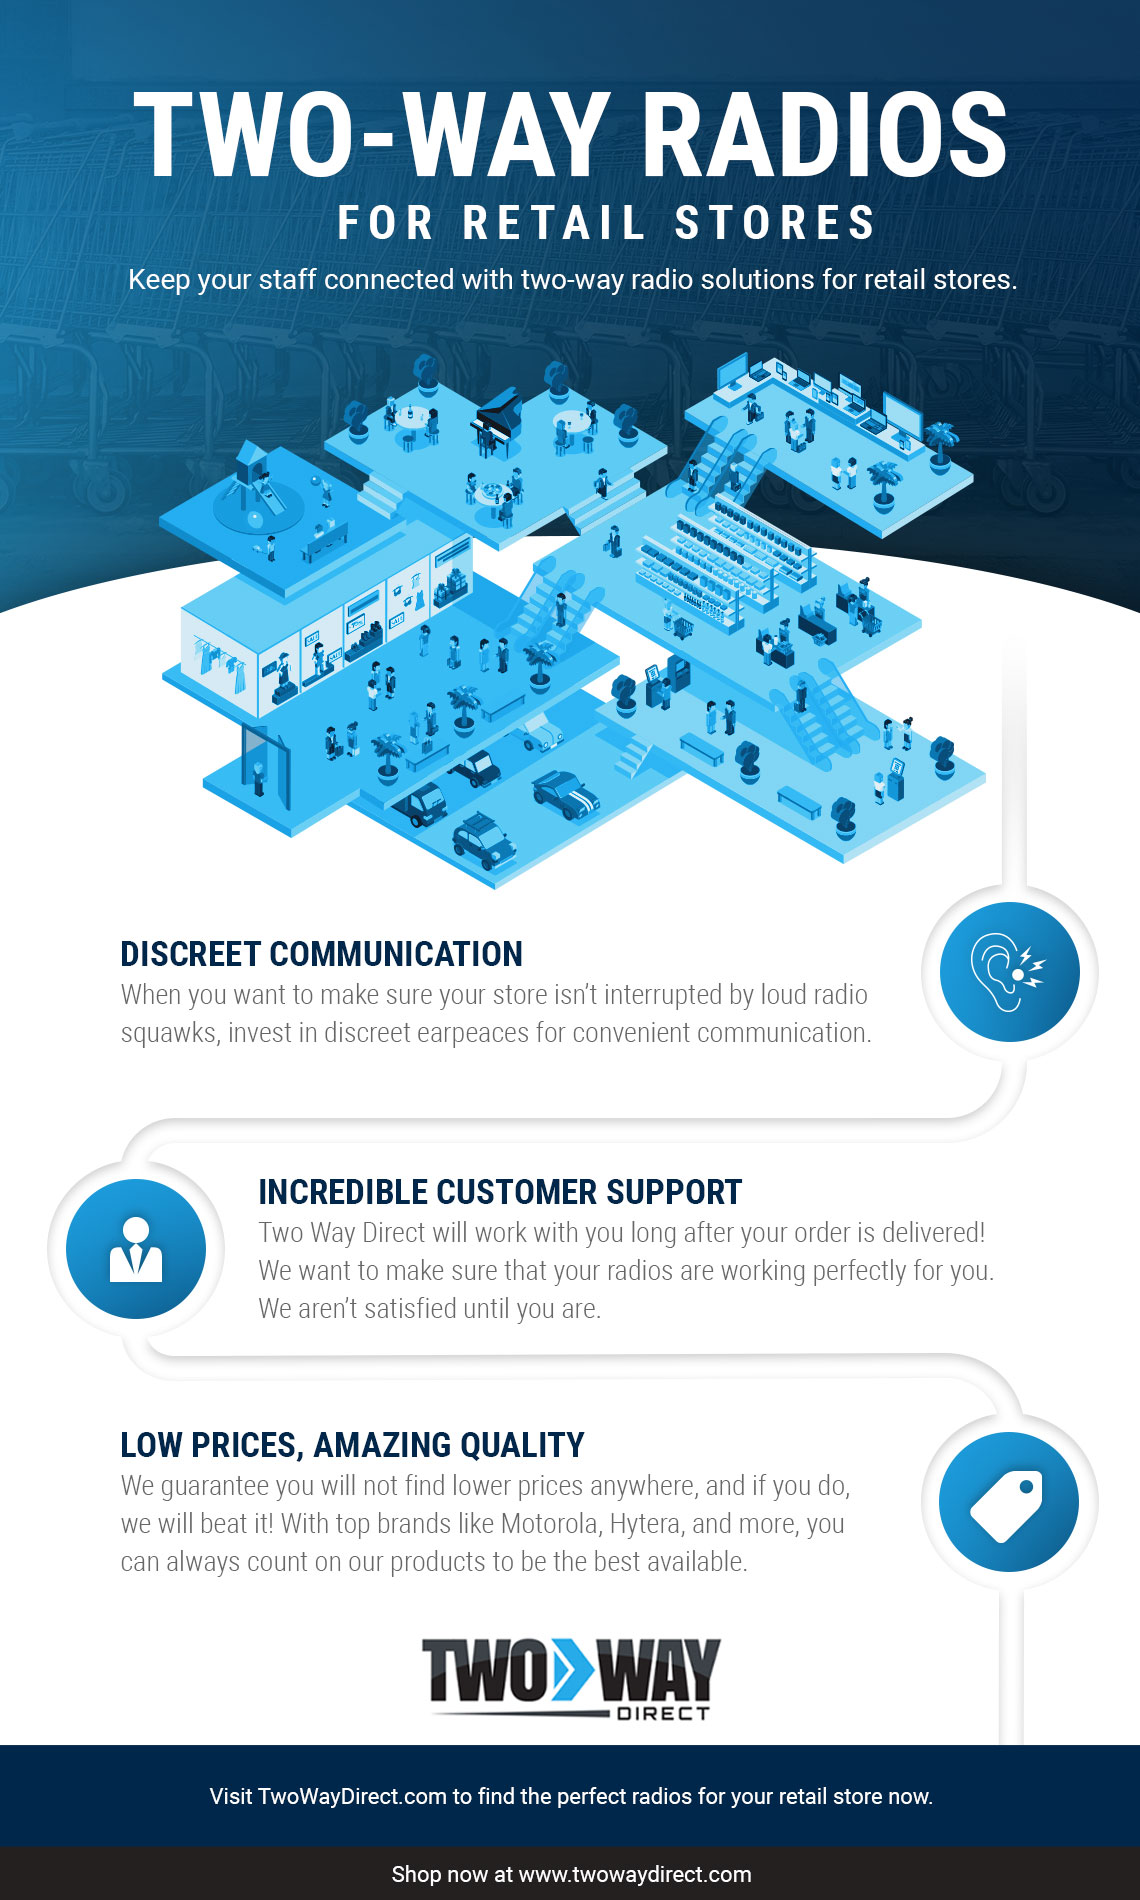 2020-01-22-infographic-retail-stores.jpg